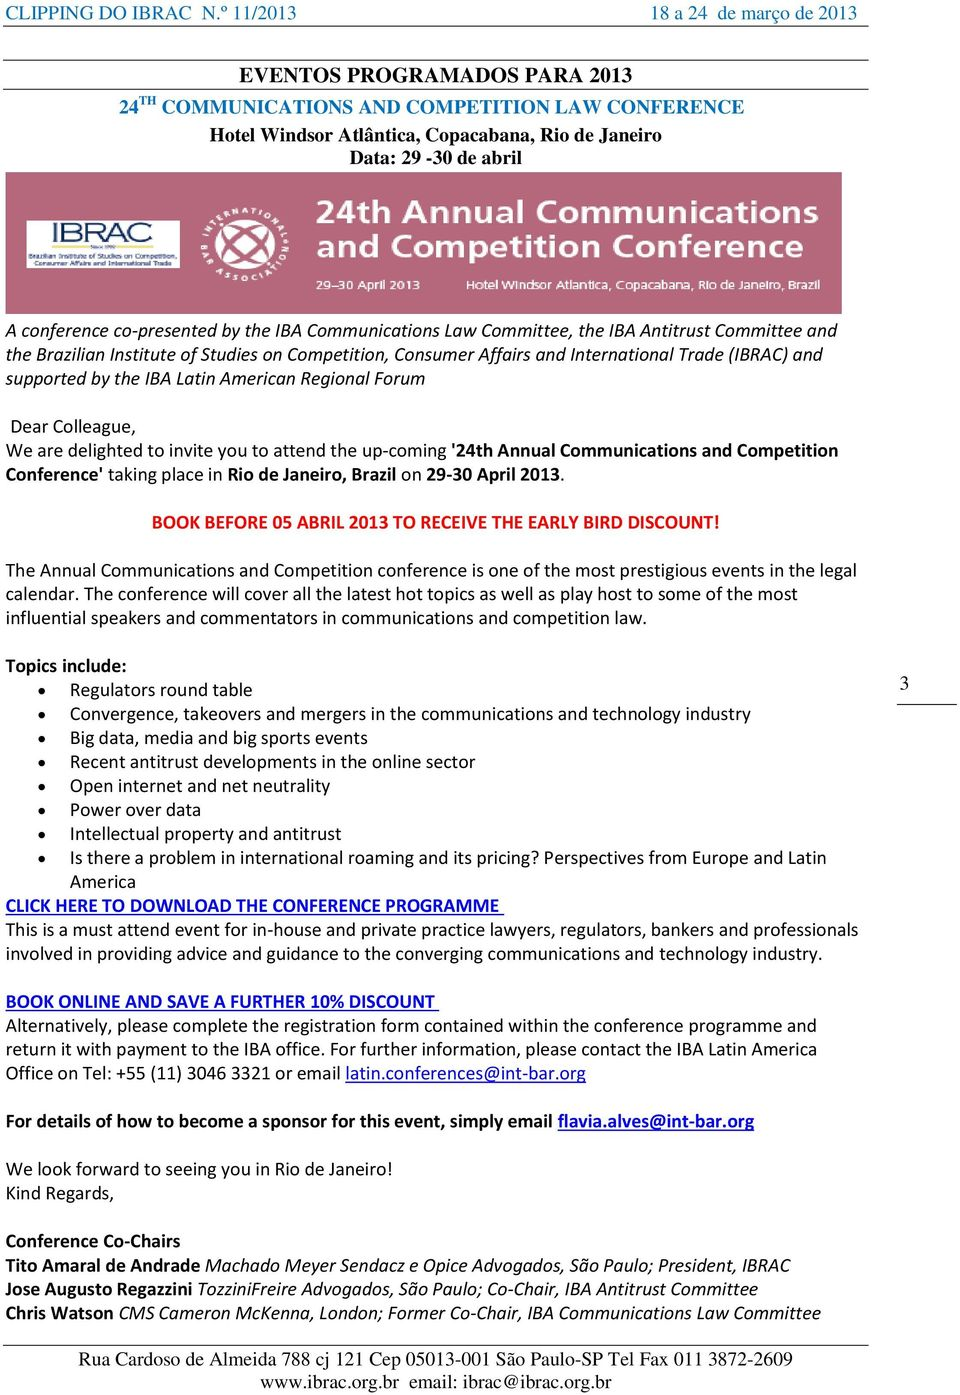 American Regional Forum Dear Colleague, We are delighted to invite you to attend the up-coming '24th Annual Communications and Competition Conference' taking place in Rio de Janeiro, Brazil on 29-30